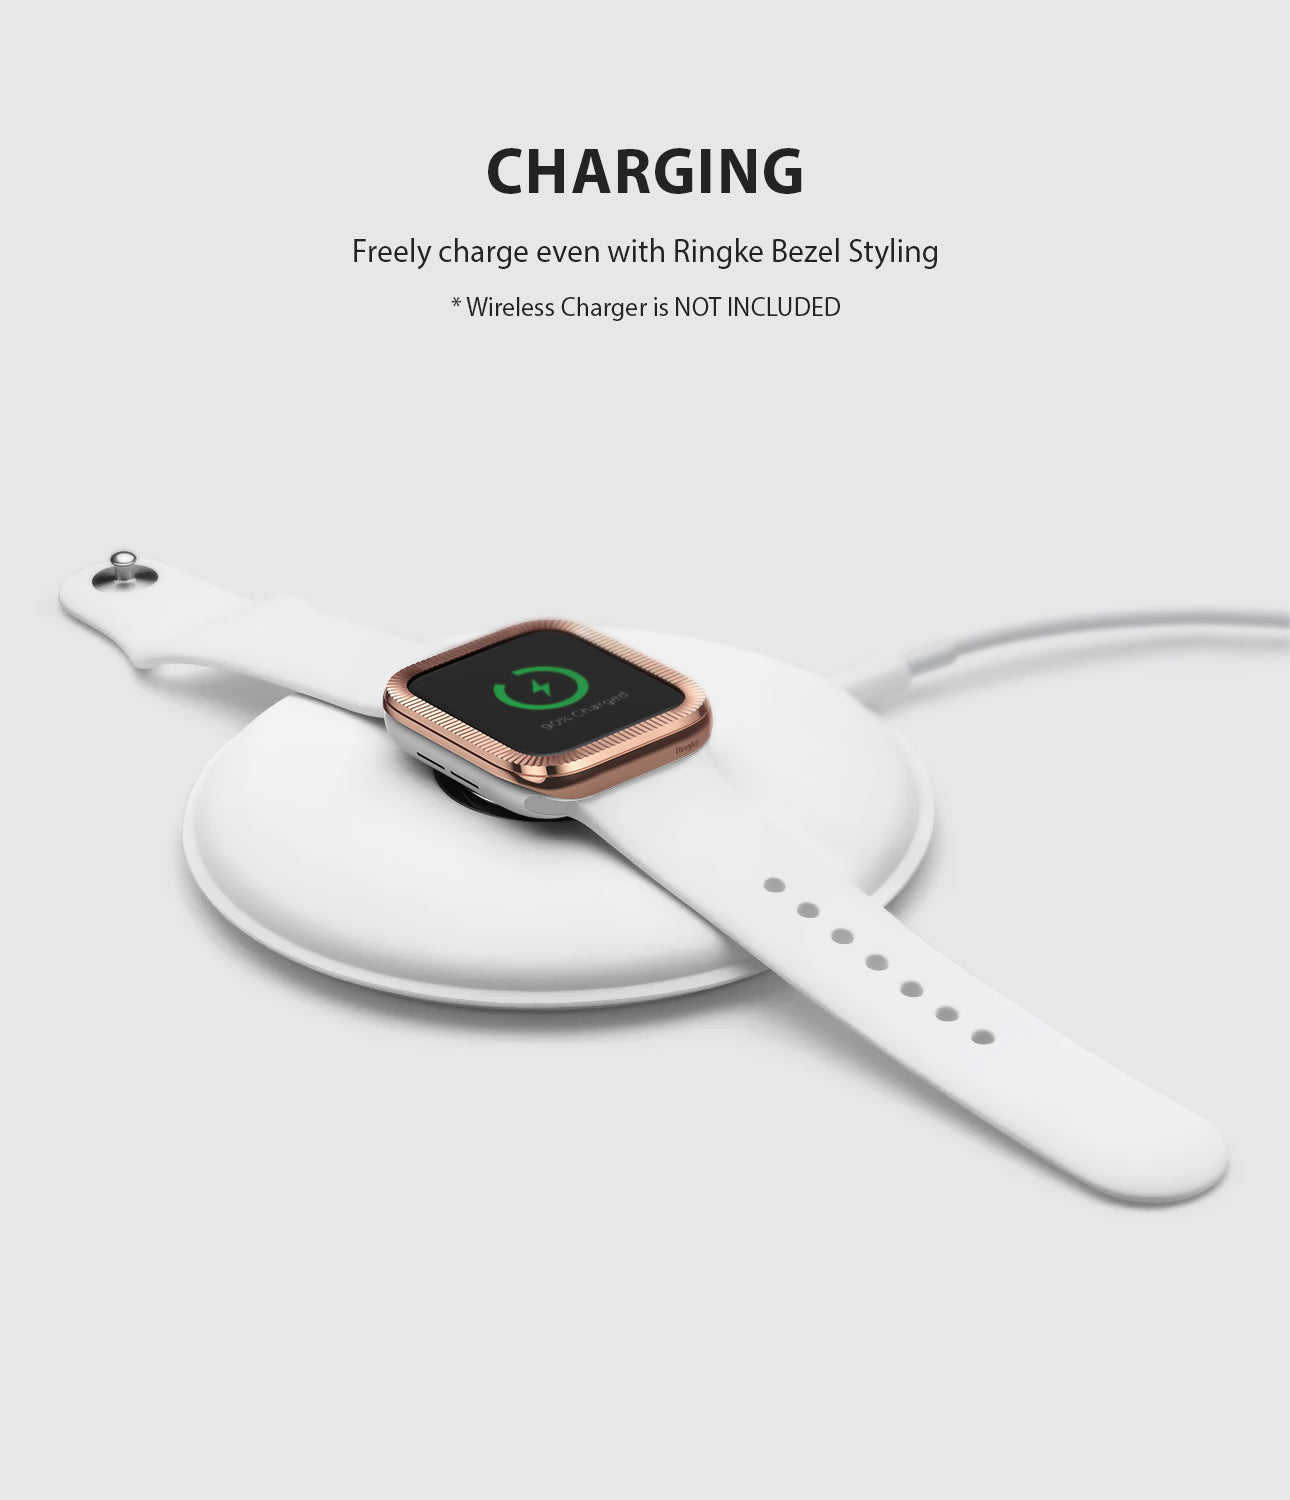 apple watch 3 2 1 42mm case ringke bezel styling stainless steel frame cover 42-43 wireless charging compatible